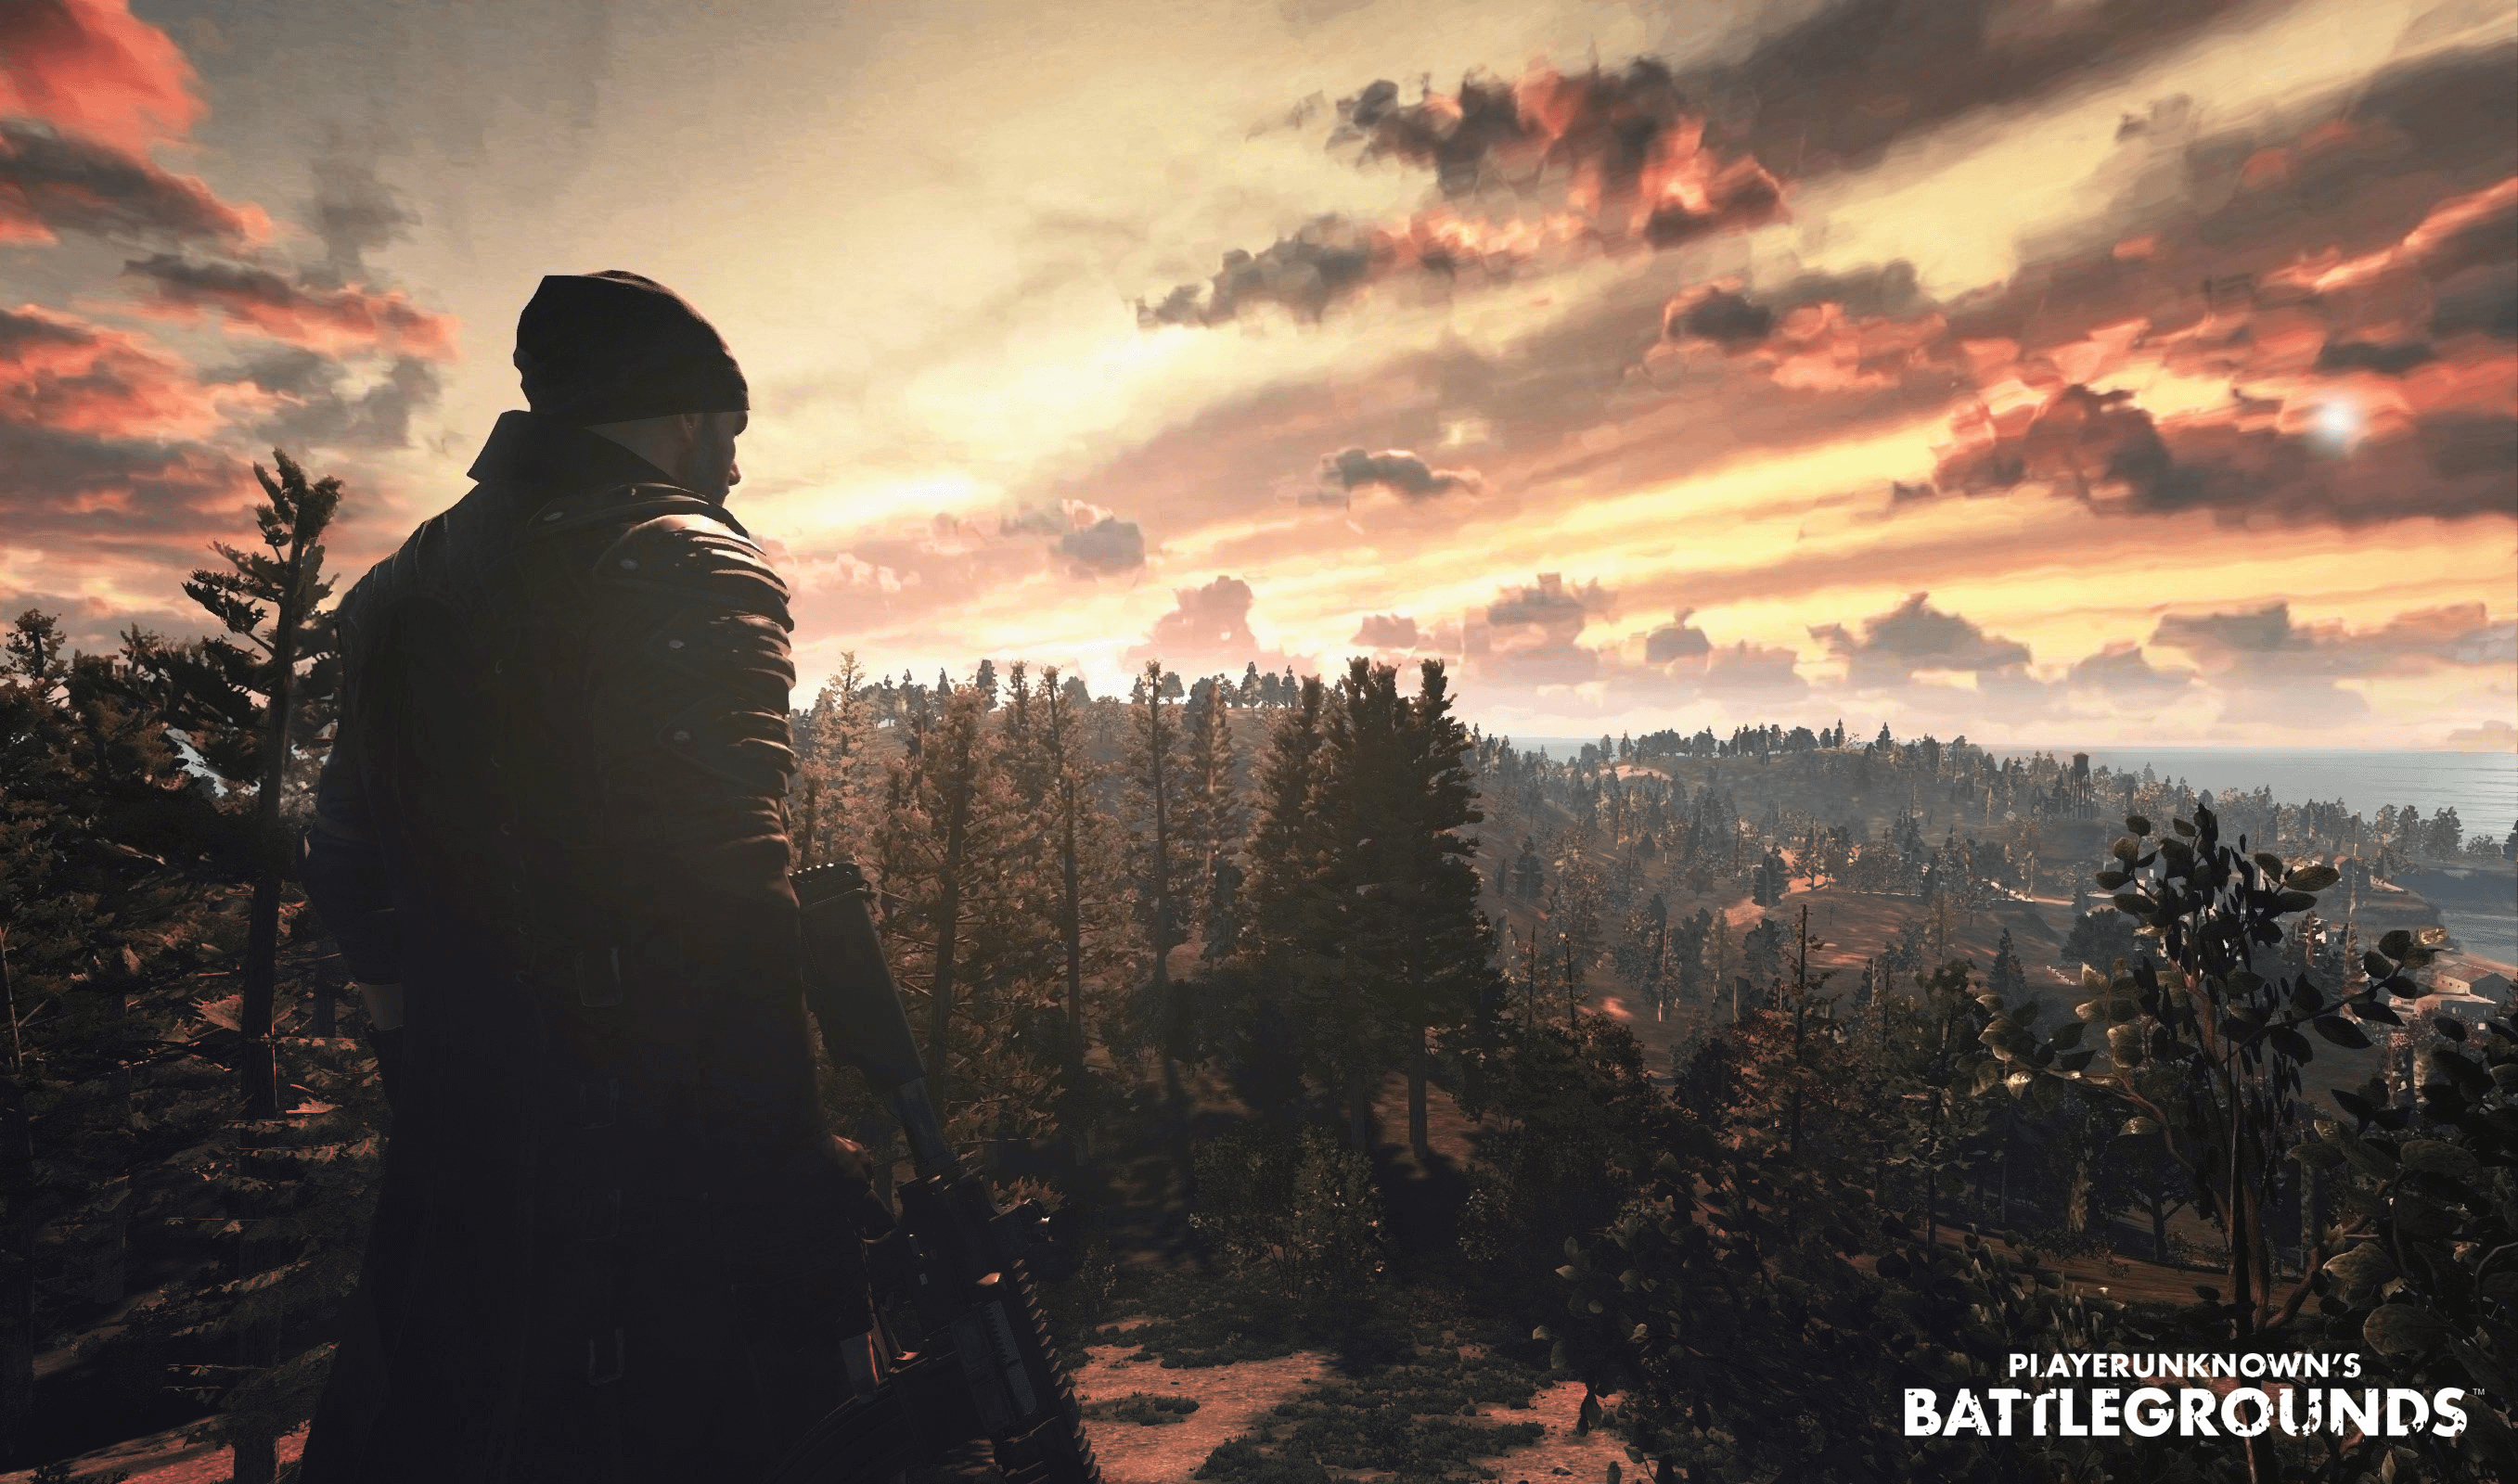 playerunknowns battlegrounds wide wallpaper 64172